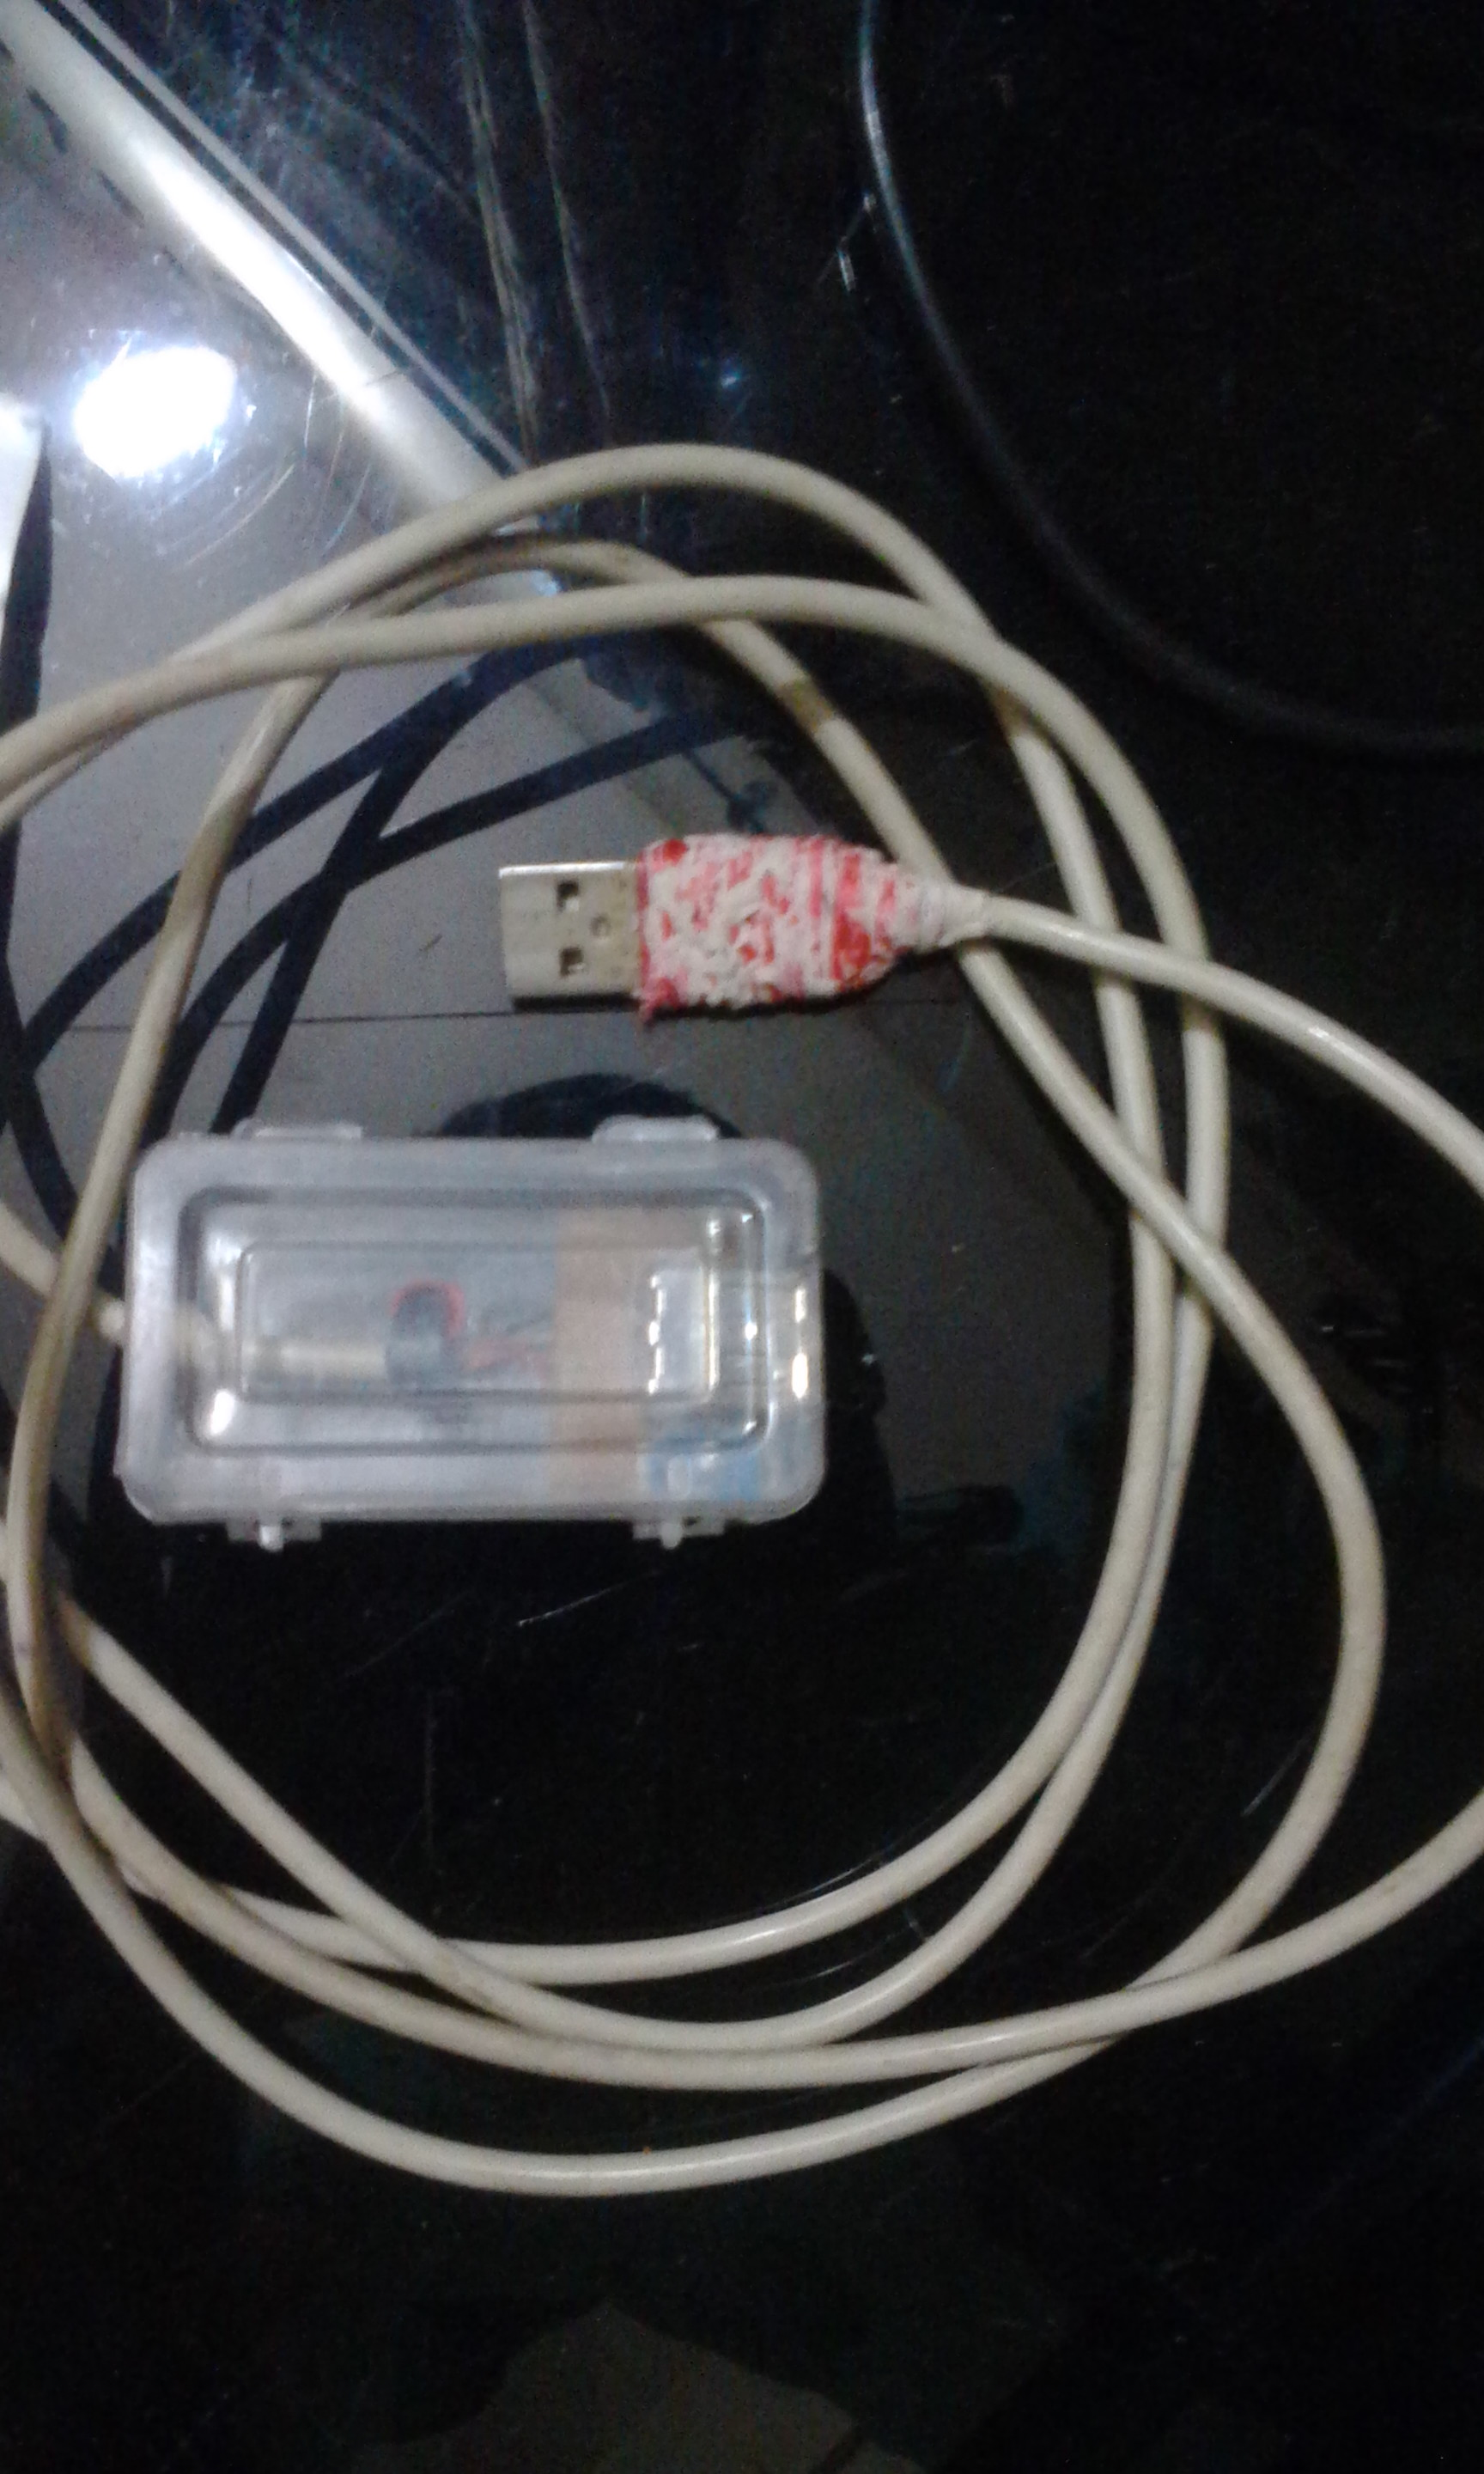 Free USB Extention Cable